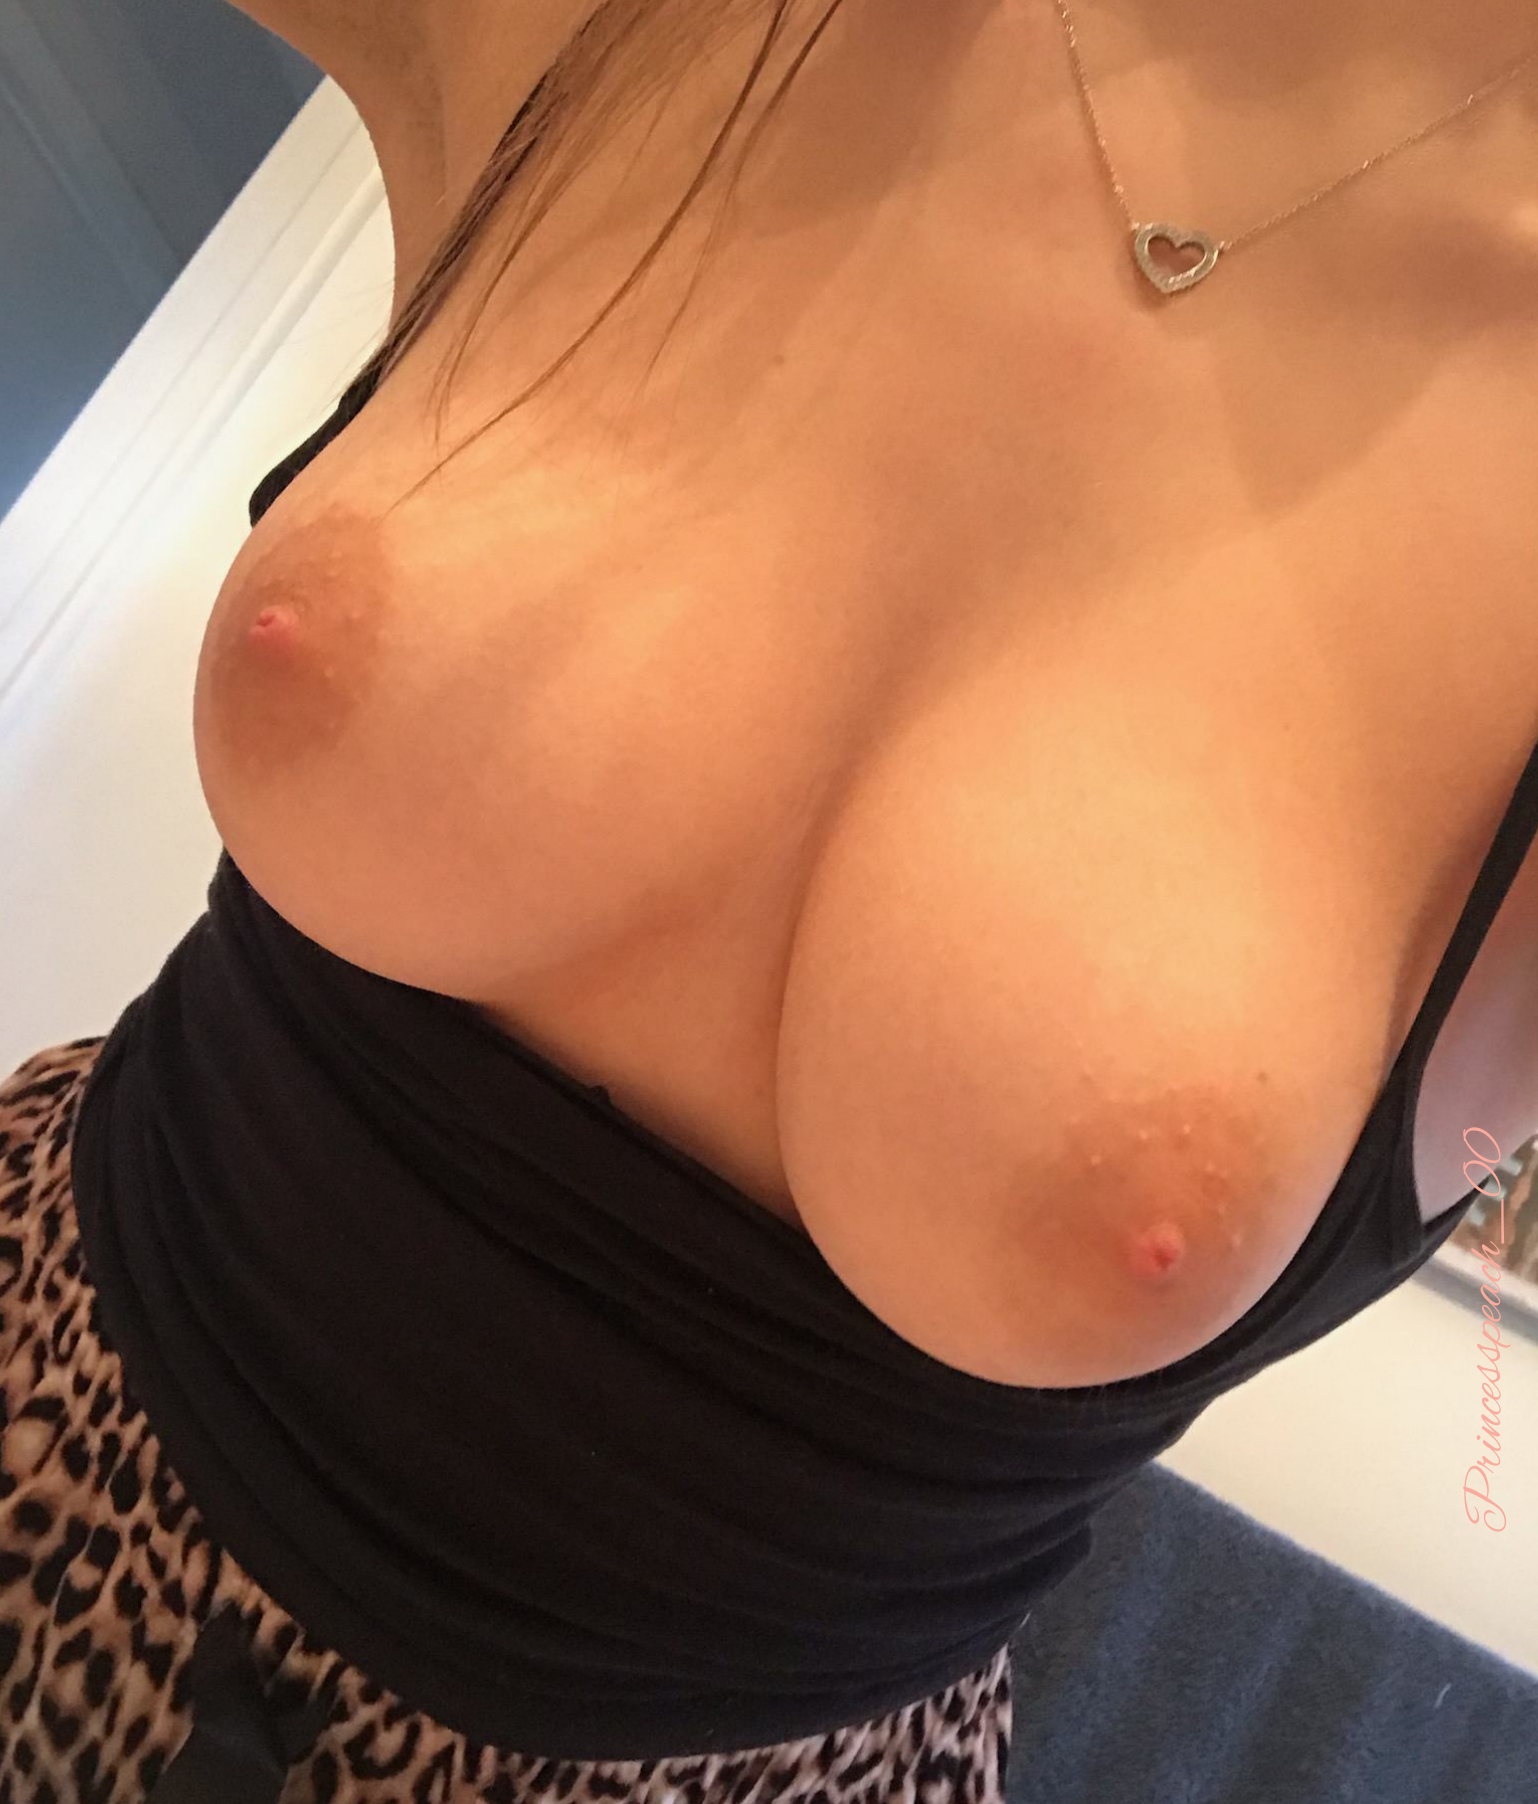 Are you staring rn?? (F)